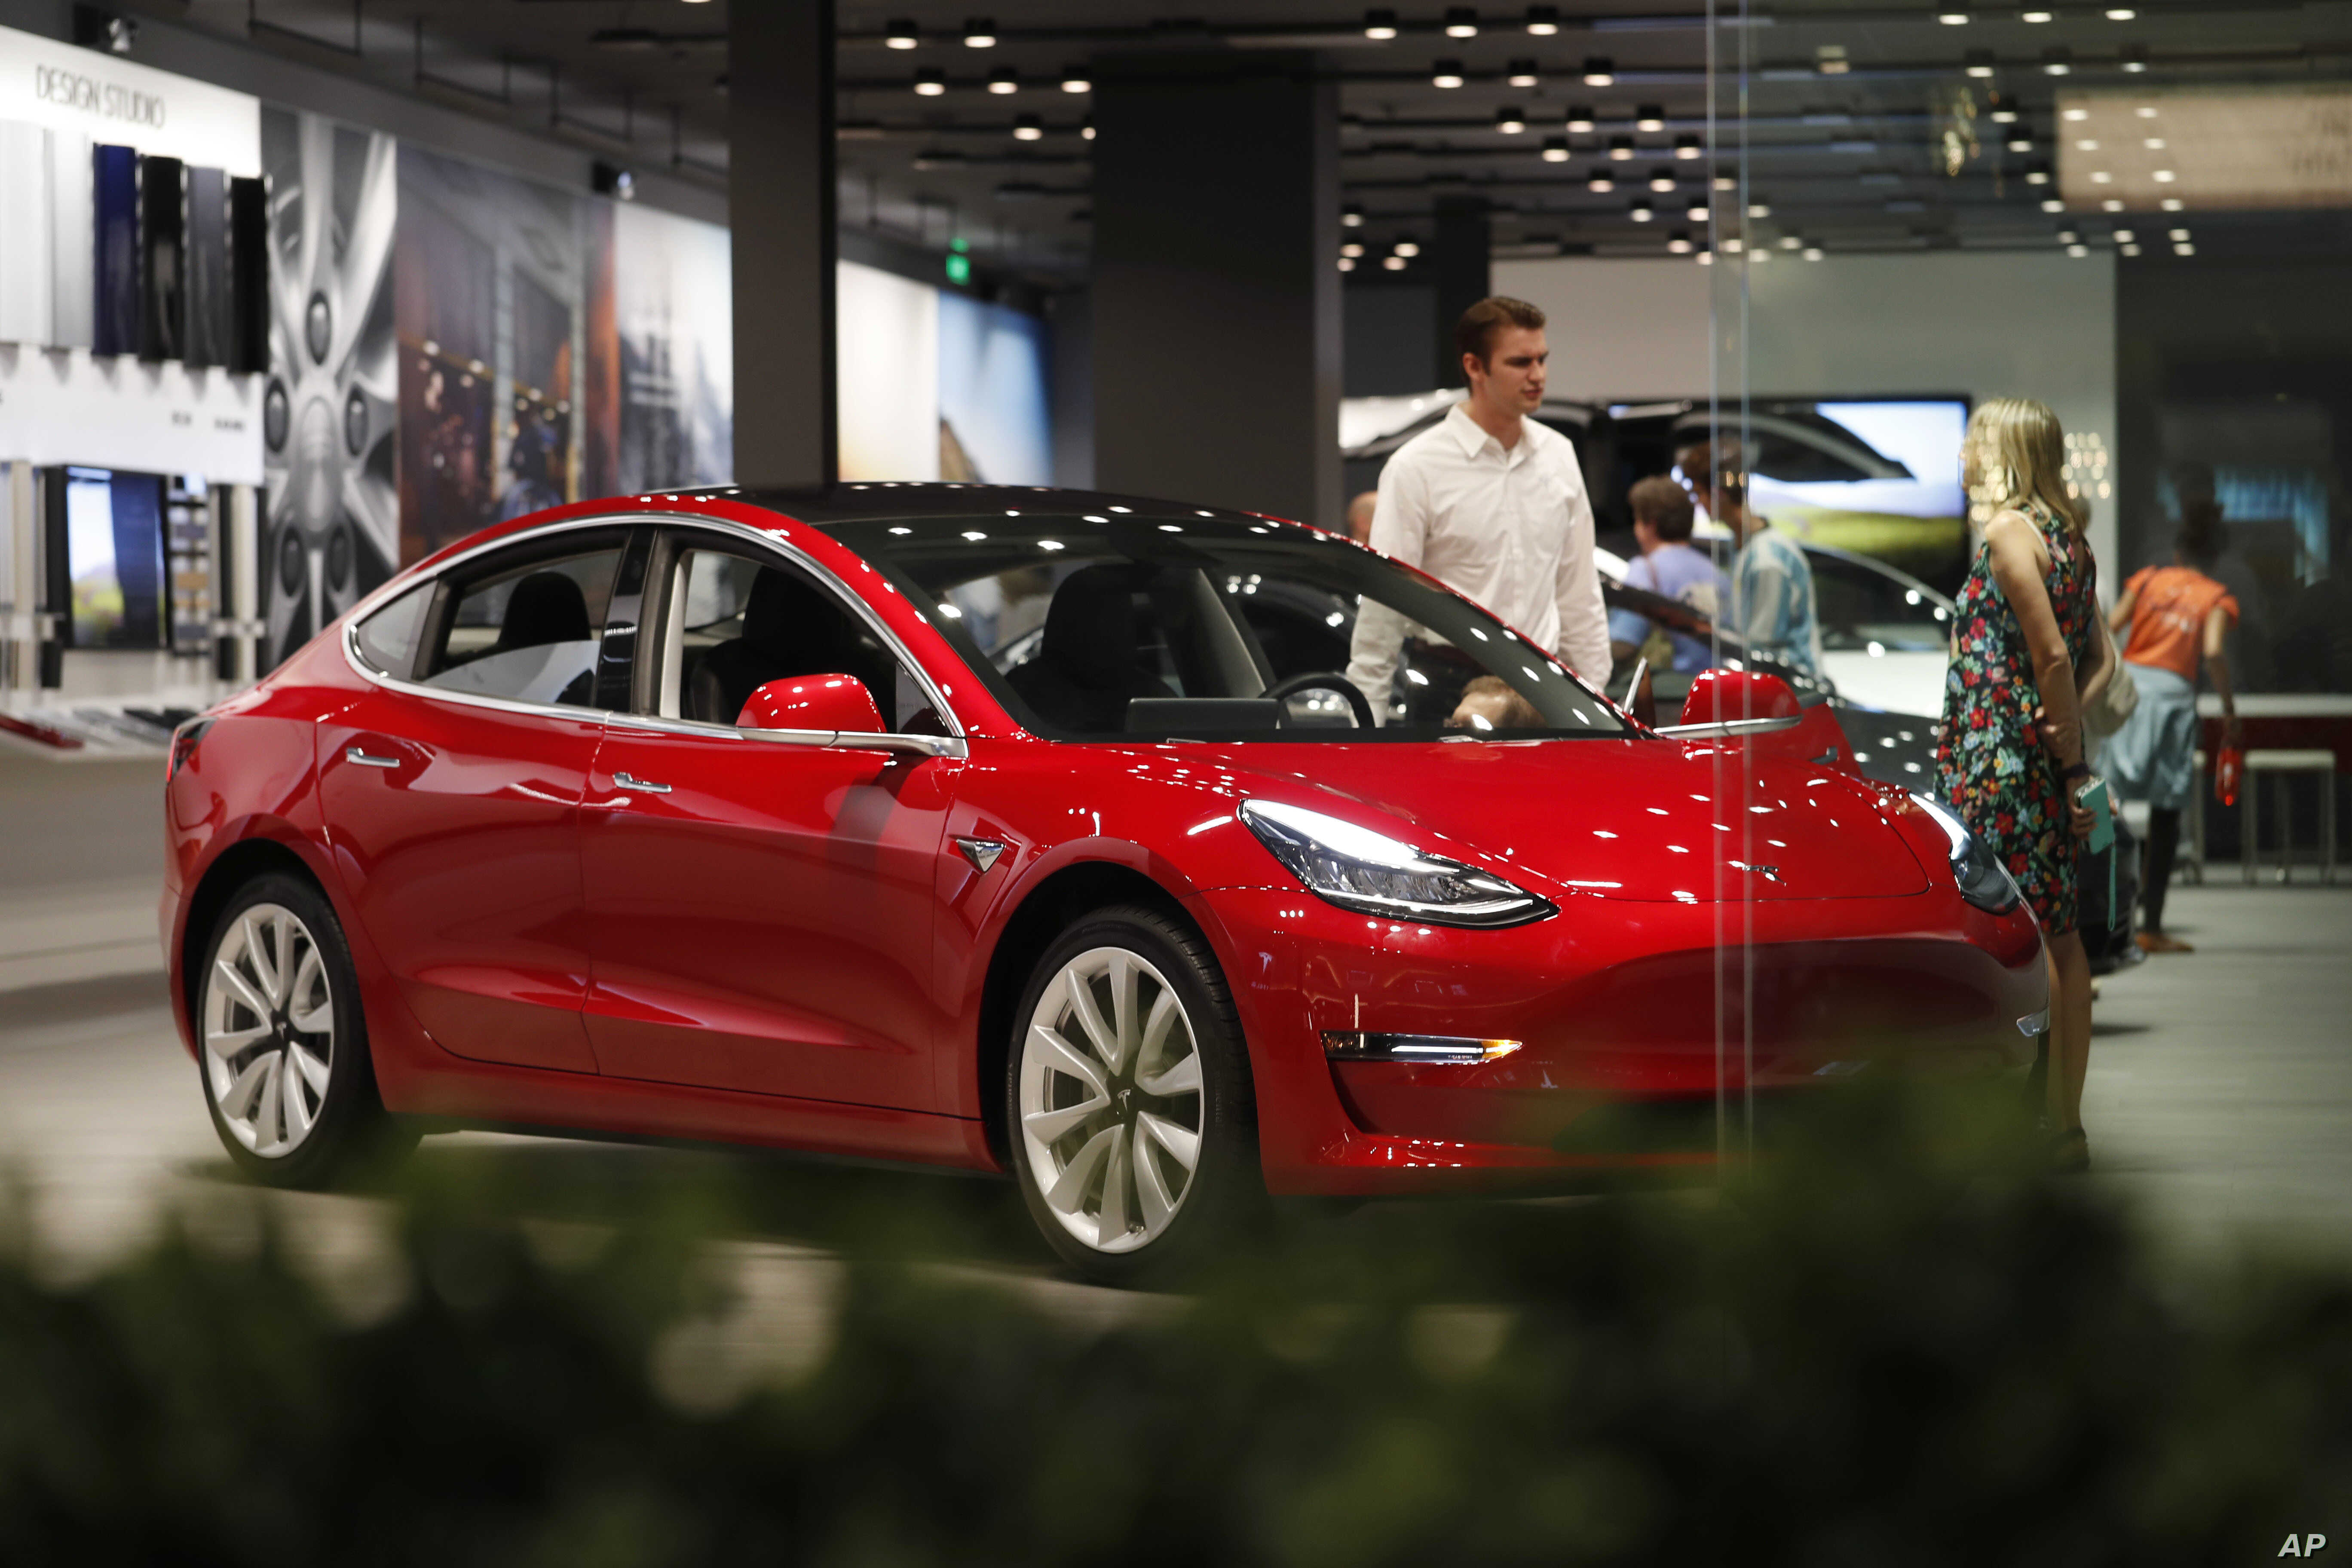 Tesla Shares Drop on Price Cut, Disappointing Model 3 ...